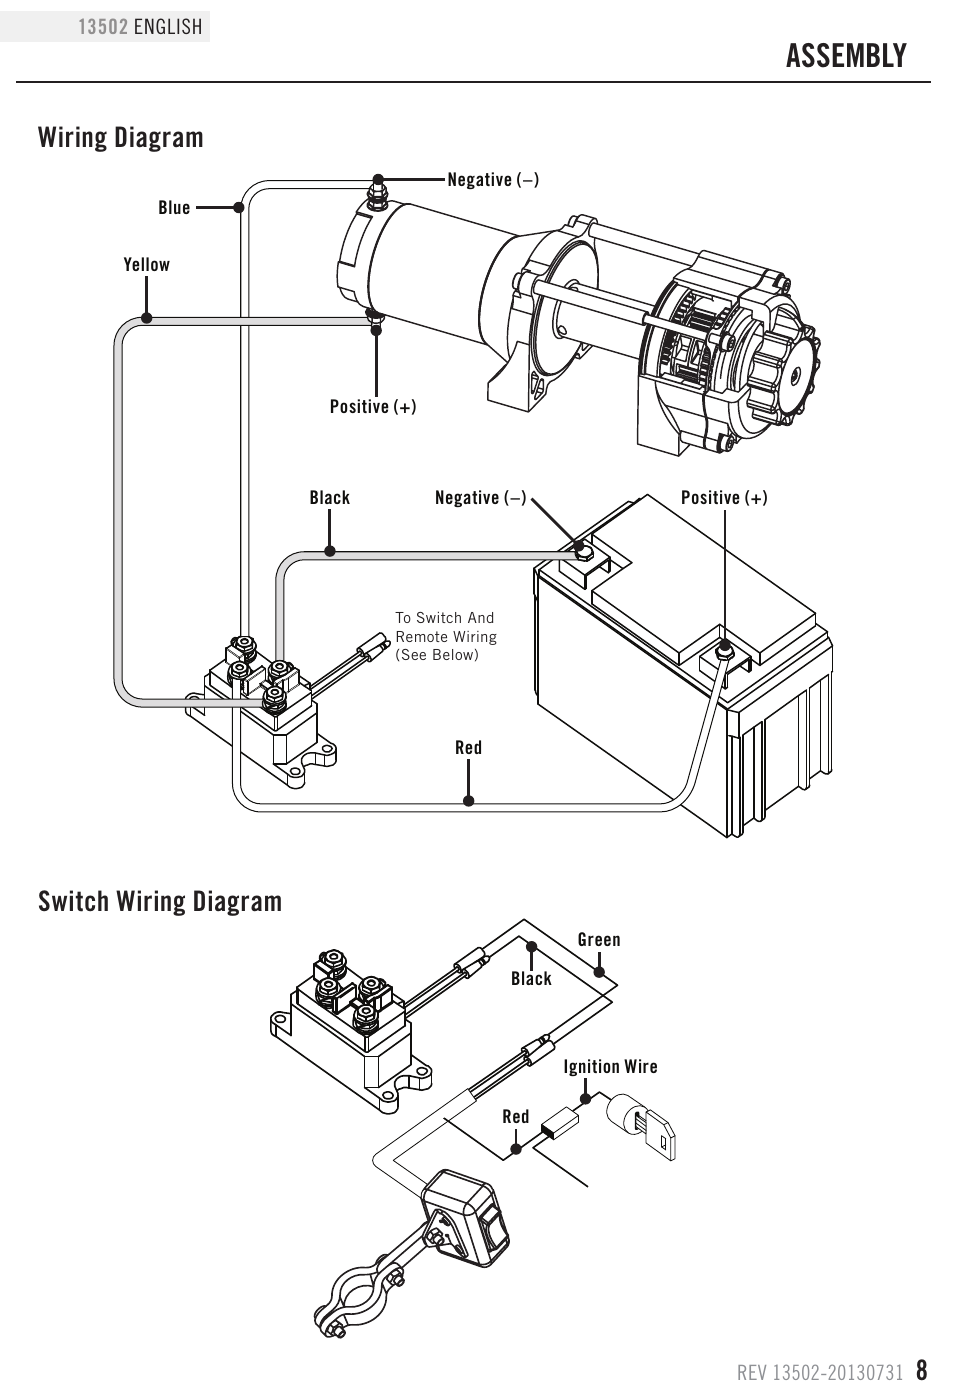 Assembly  Wiring Diagram Switch Wiring Diagram